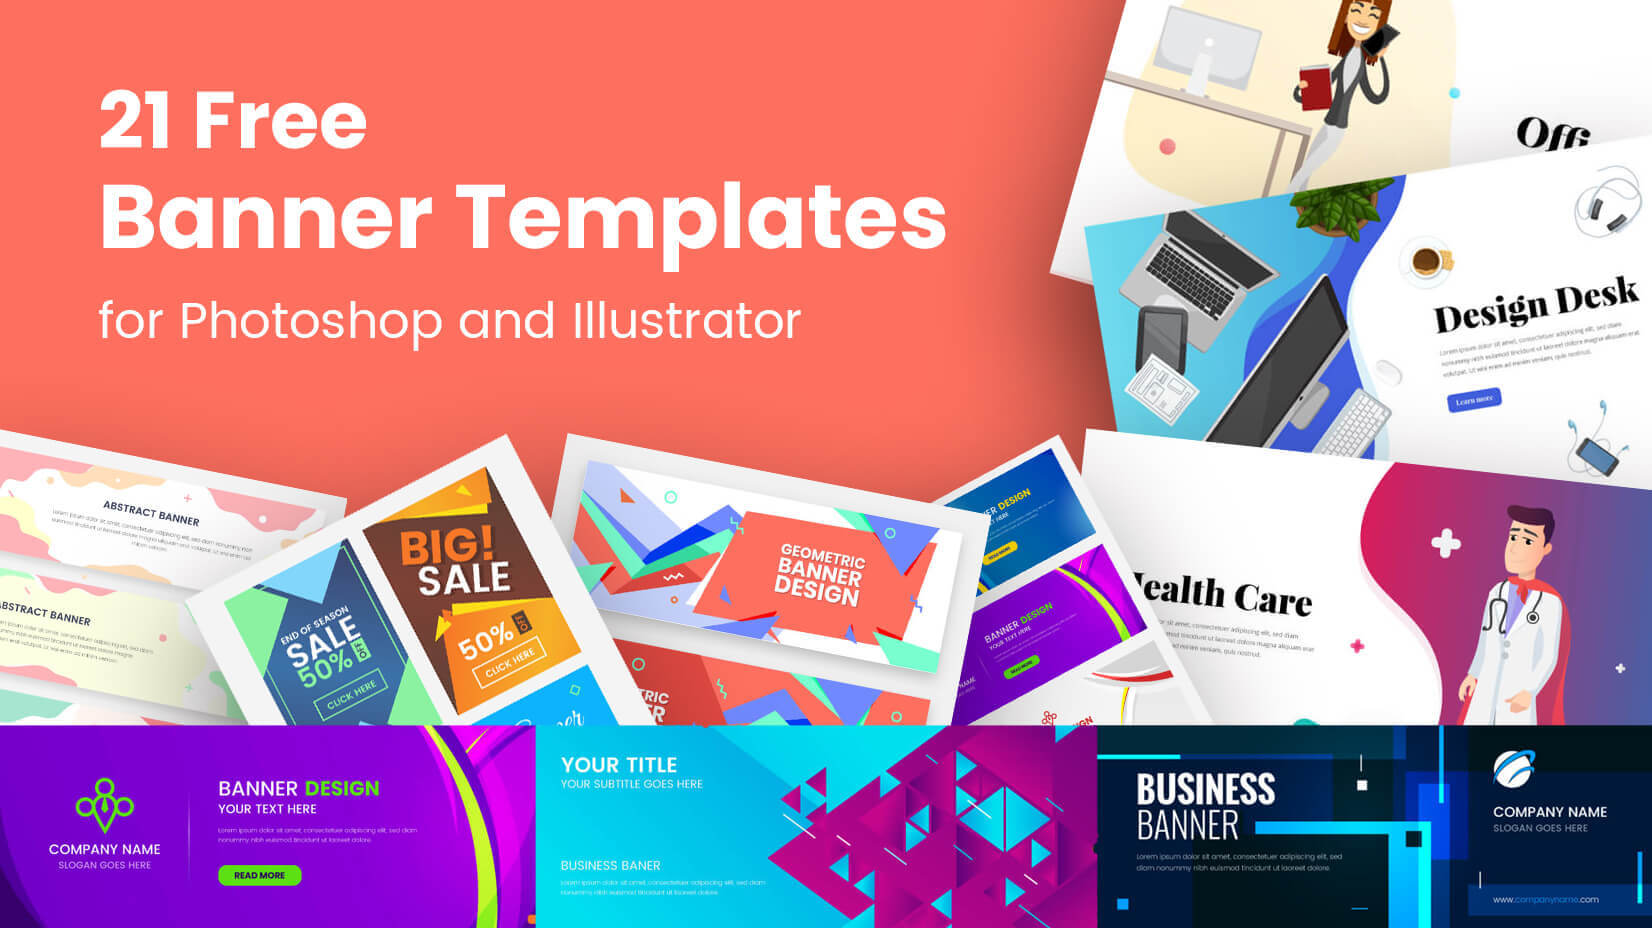 21 Free Banner Templates For Photoshop And Illustrator For Website Banner Templates Free Download